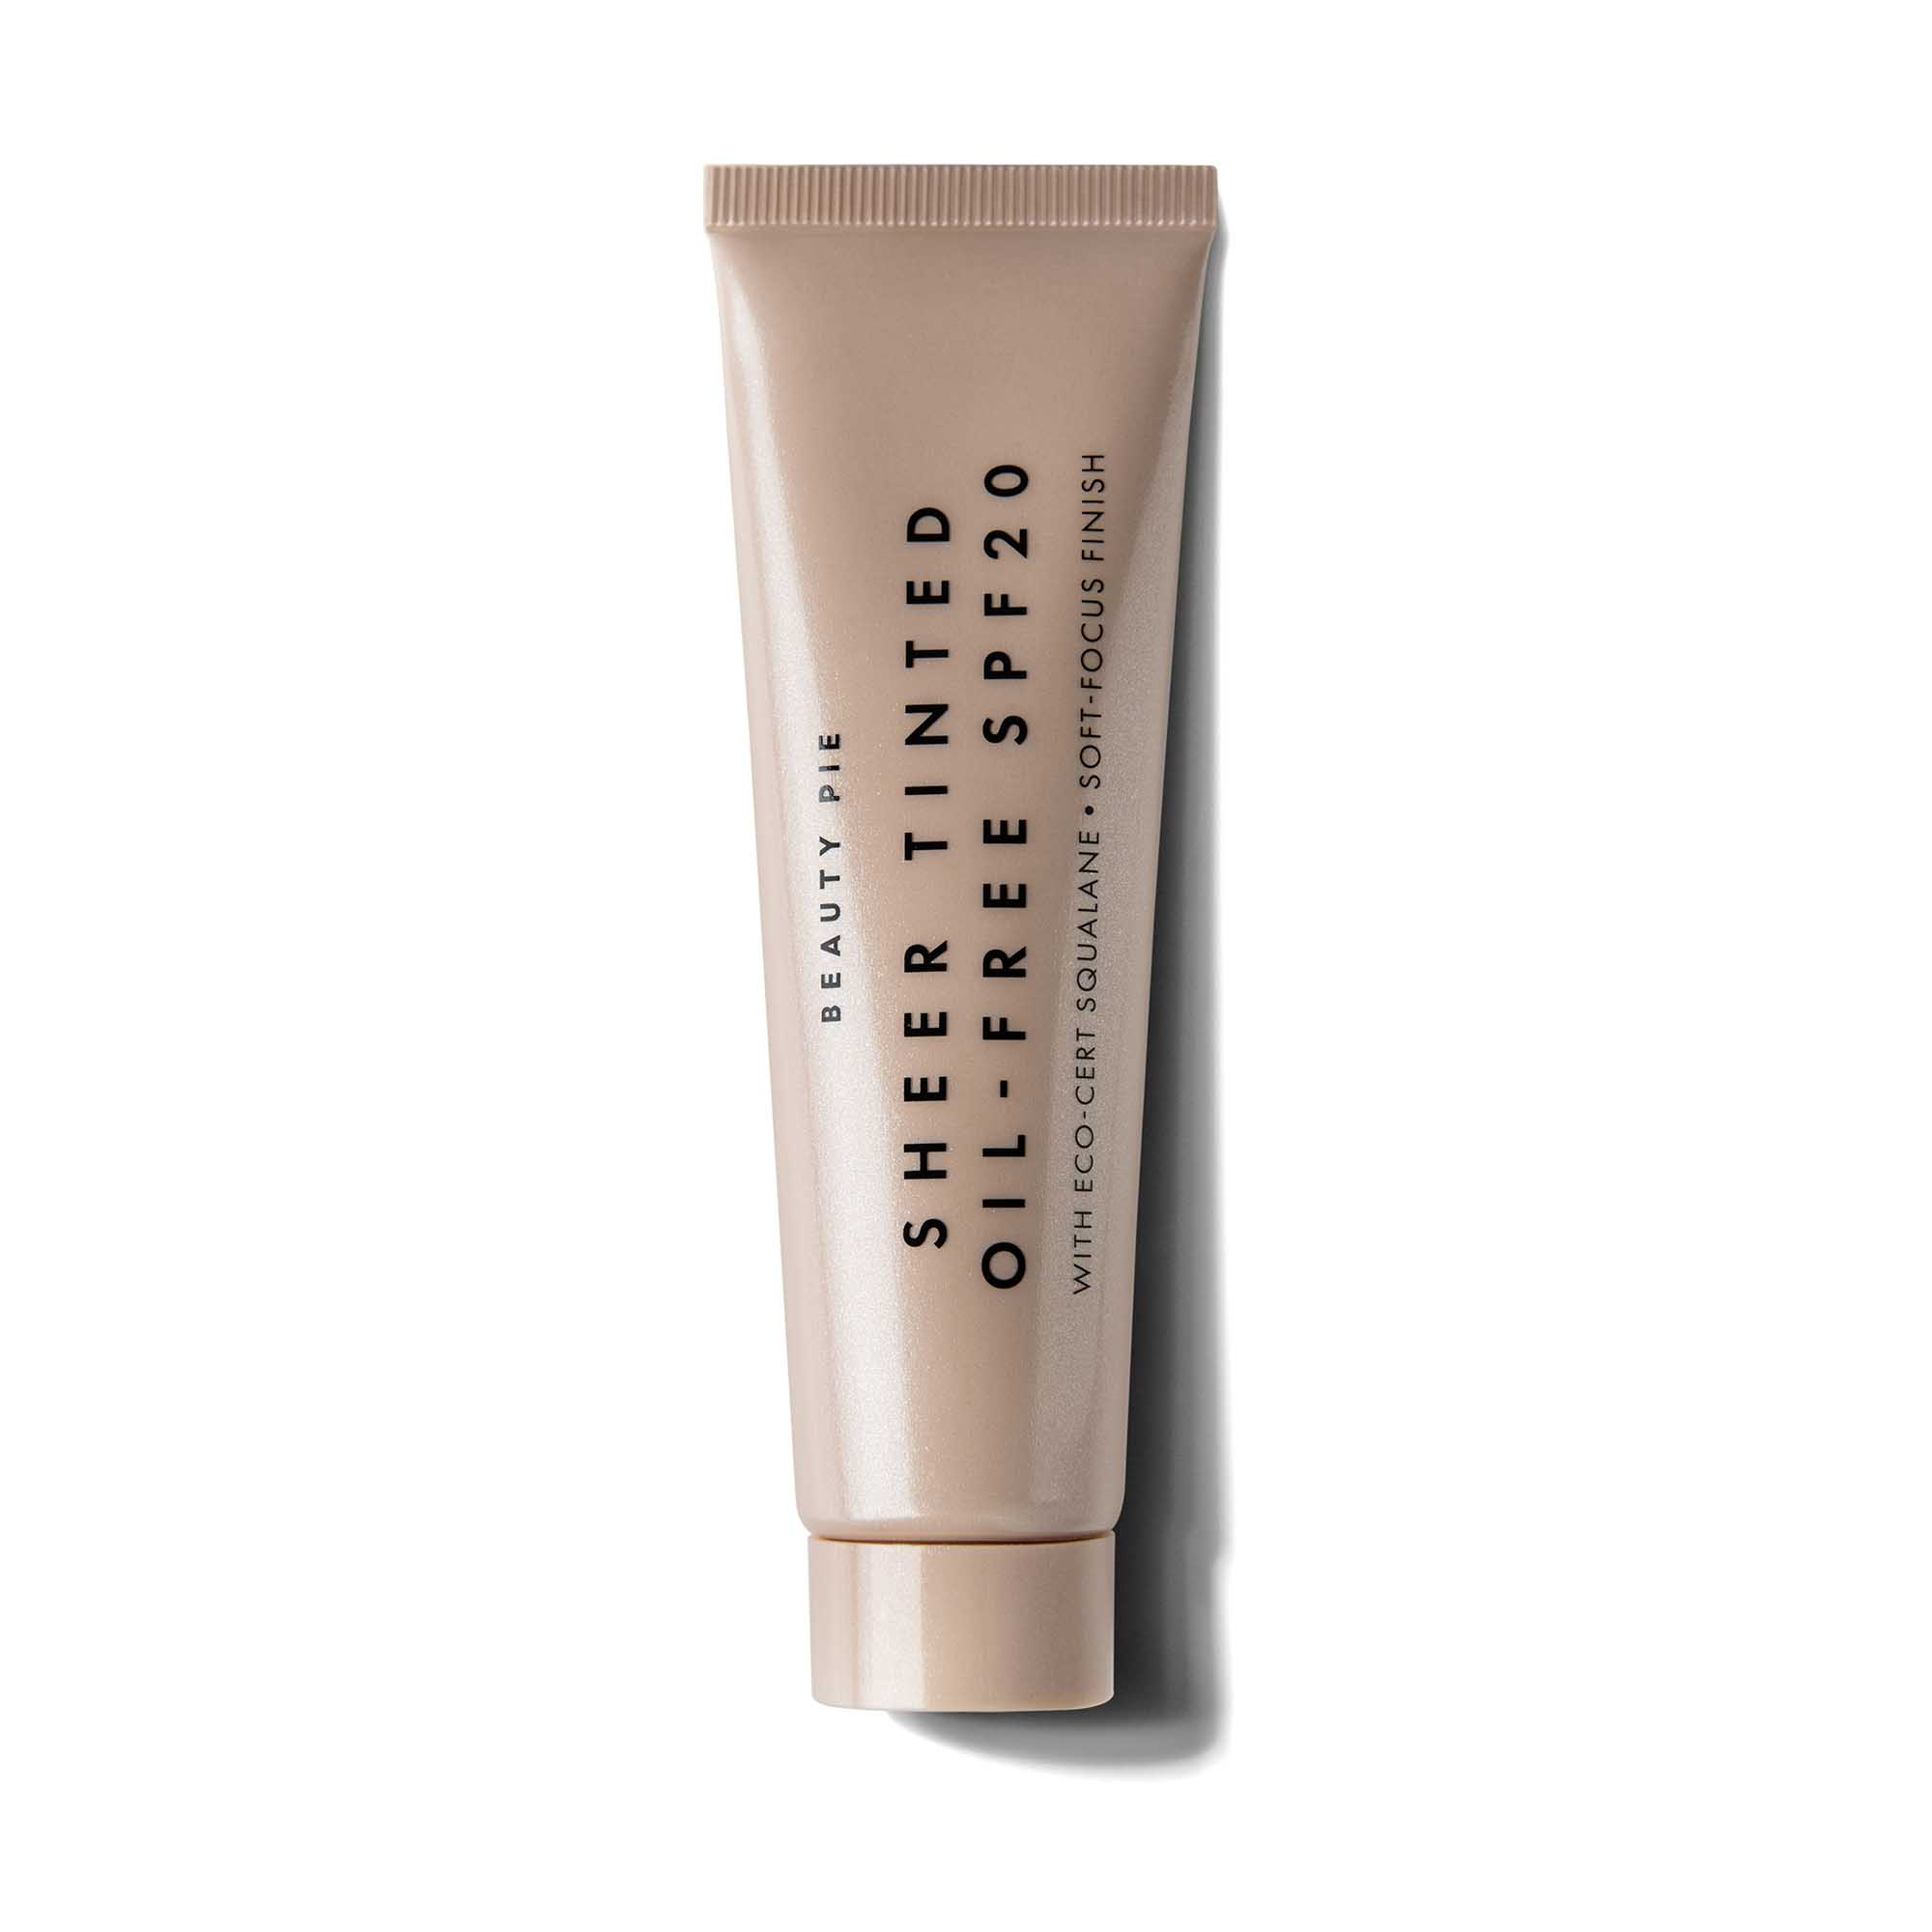 Super Healthy Skin™ Tinted SPF20 in Fair by Beauty Pie